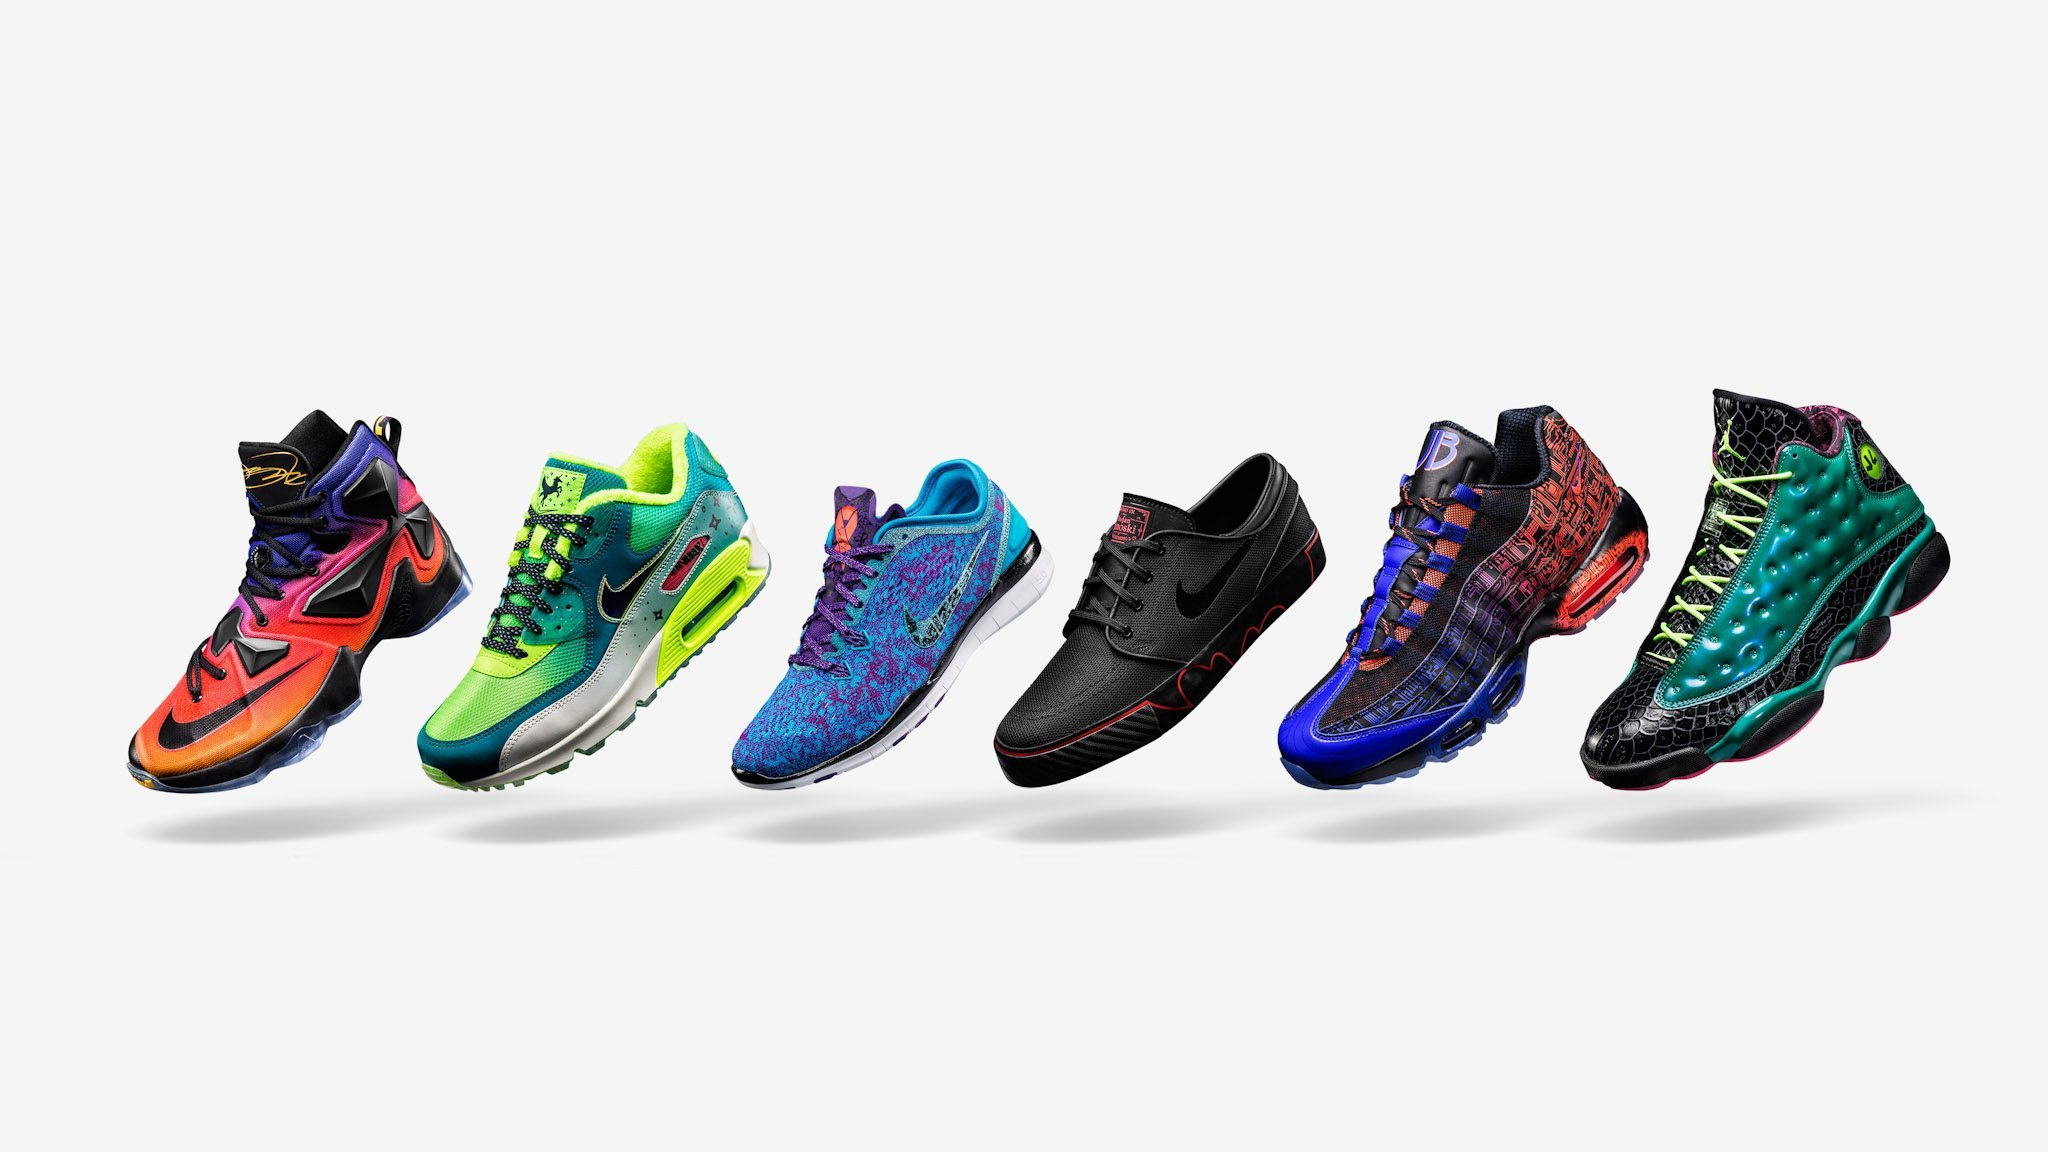 Nike x Doernbecher Freestyle Collection 2015 10